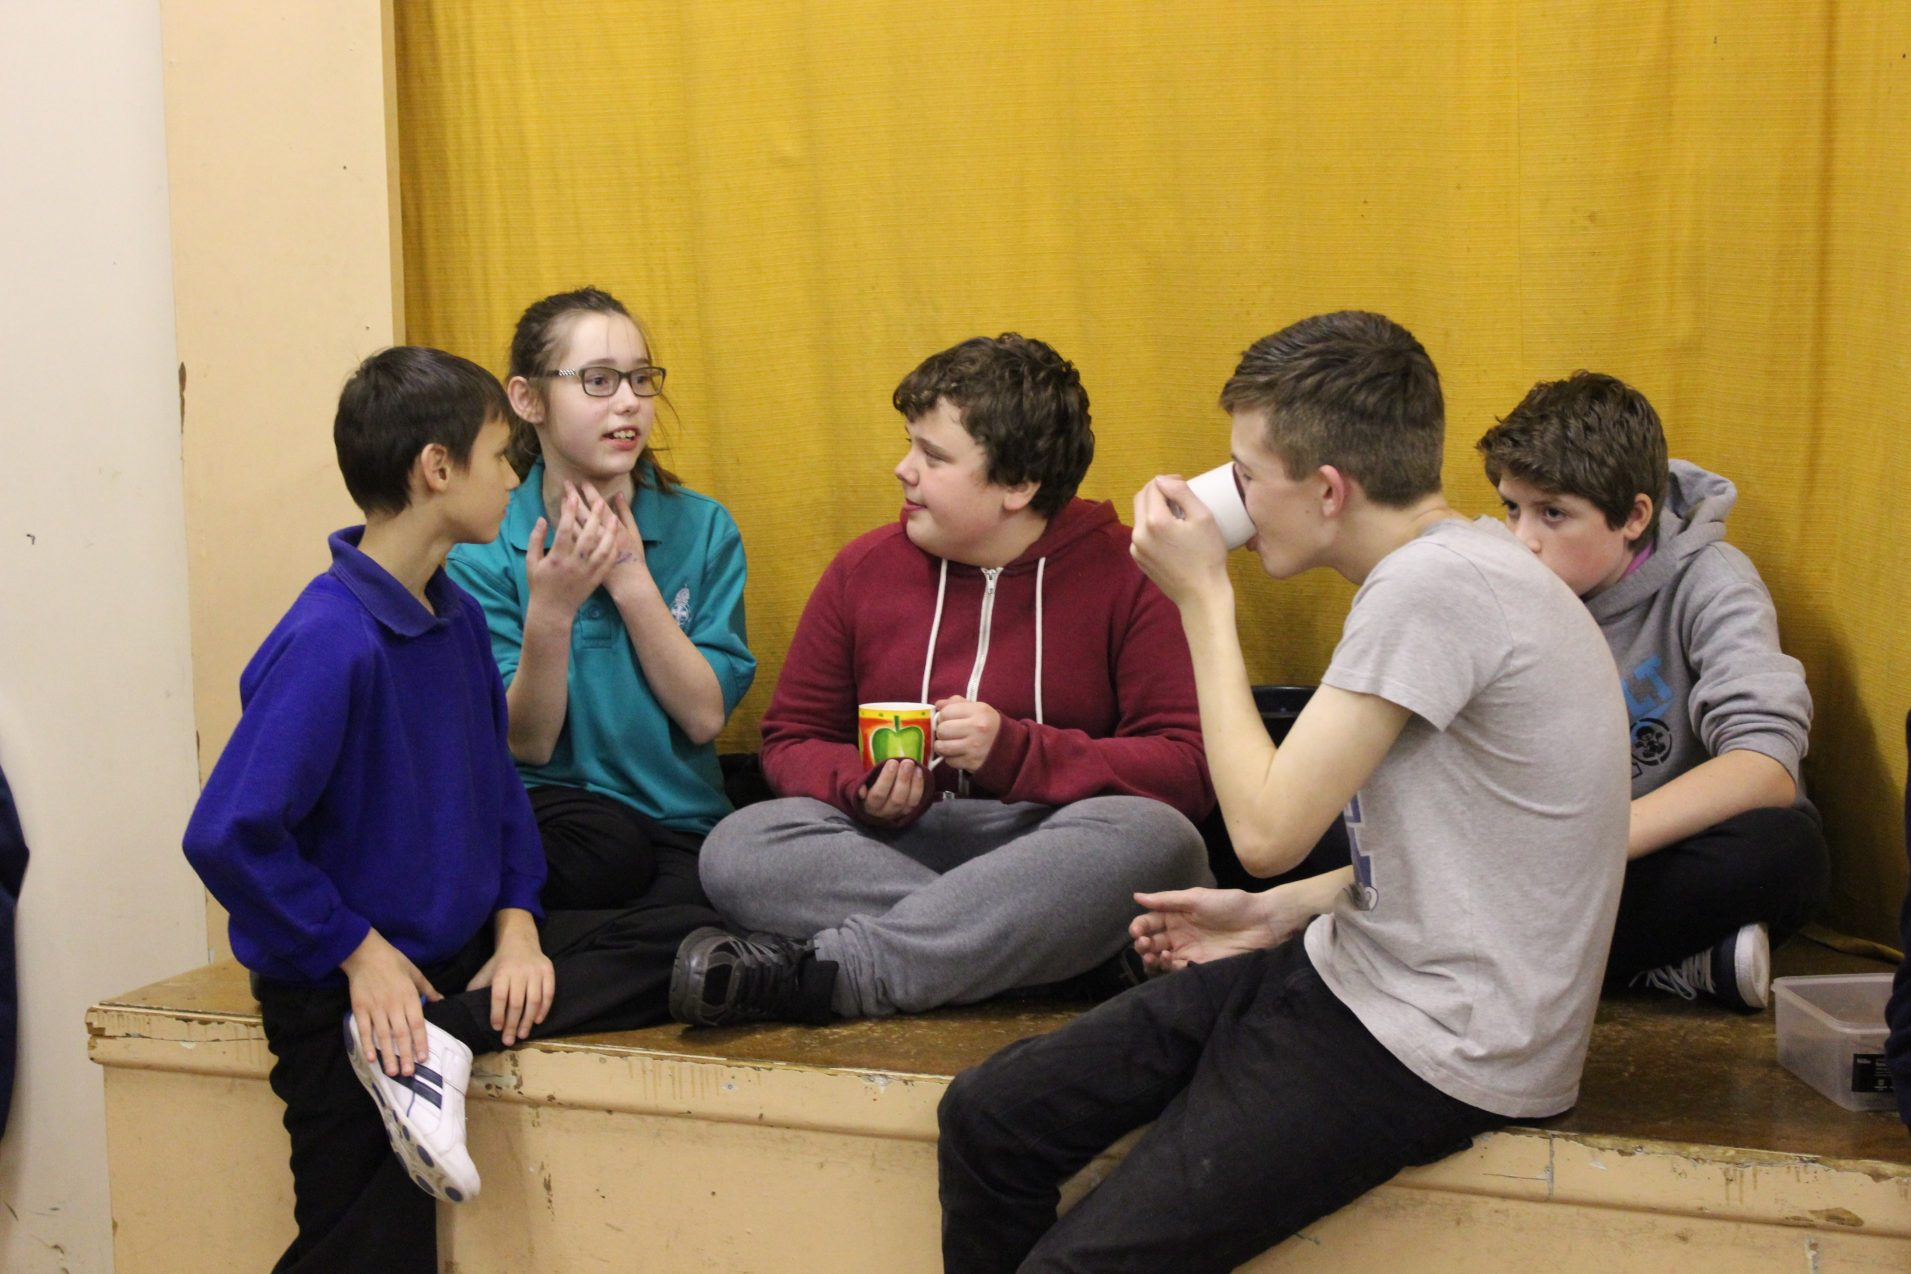 Young people chatting